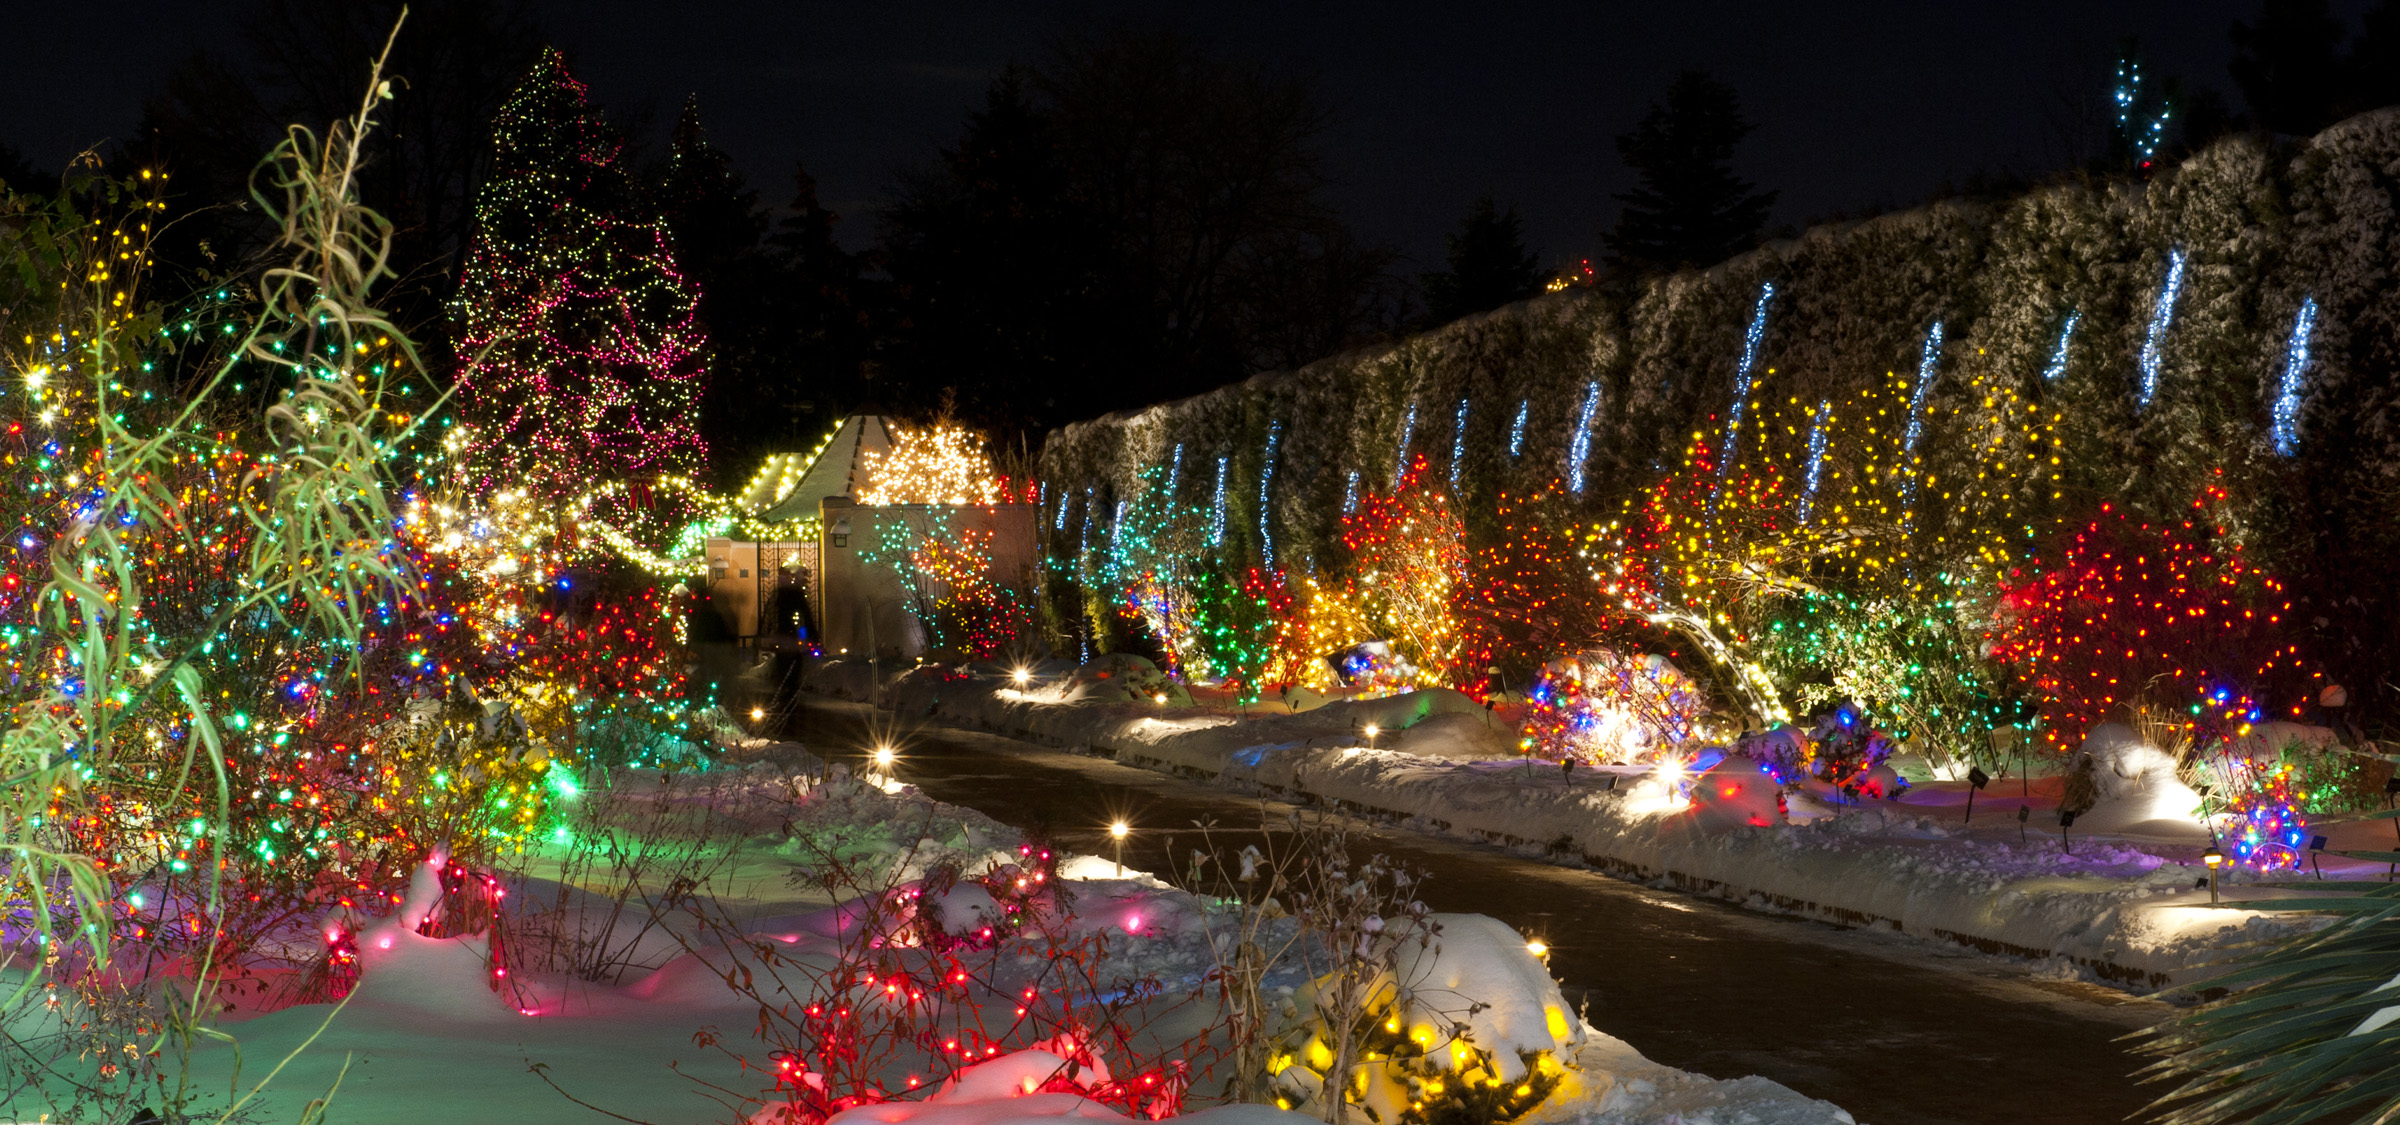 What to light up during christmas in outdoor 15 for Professional outdoor christmas decorations